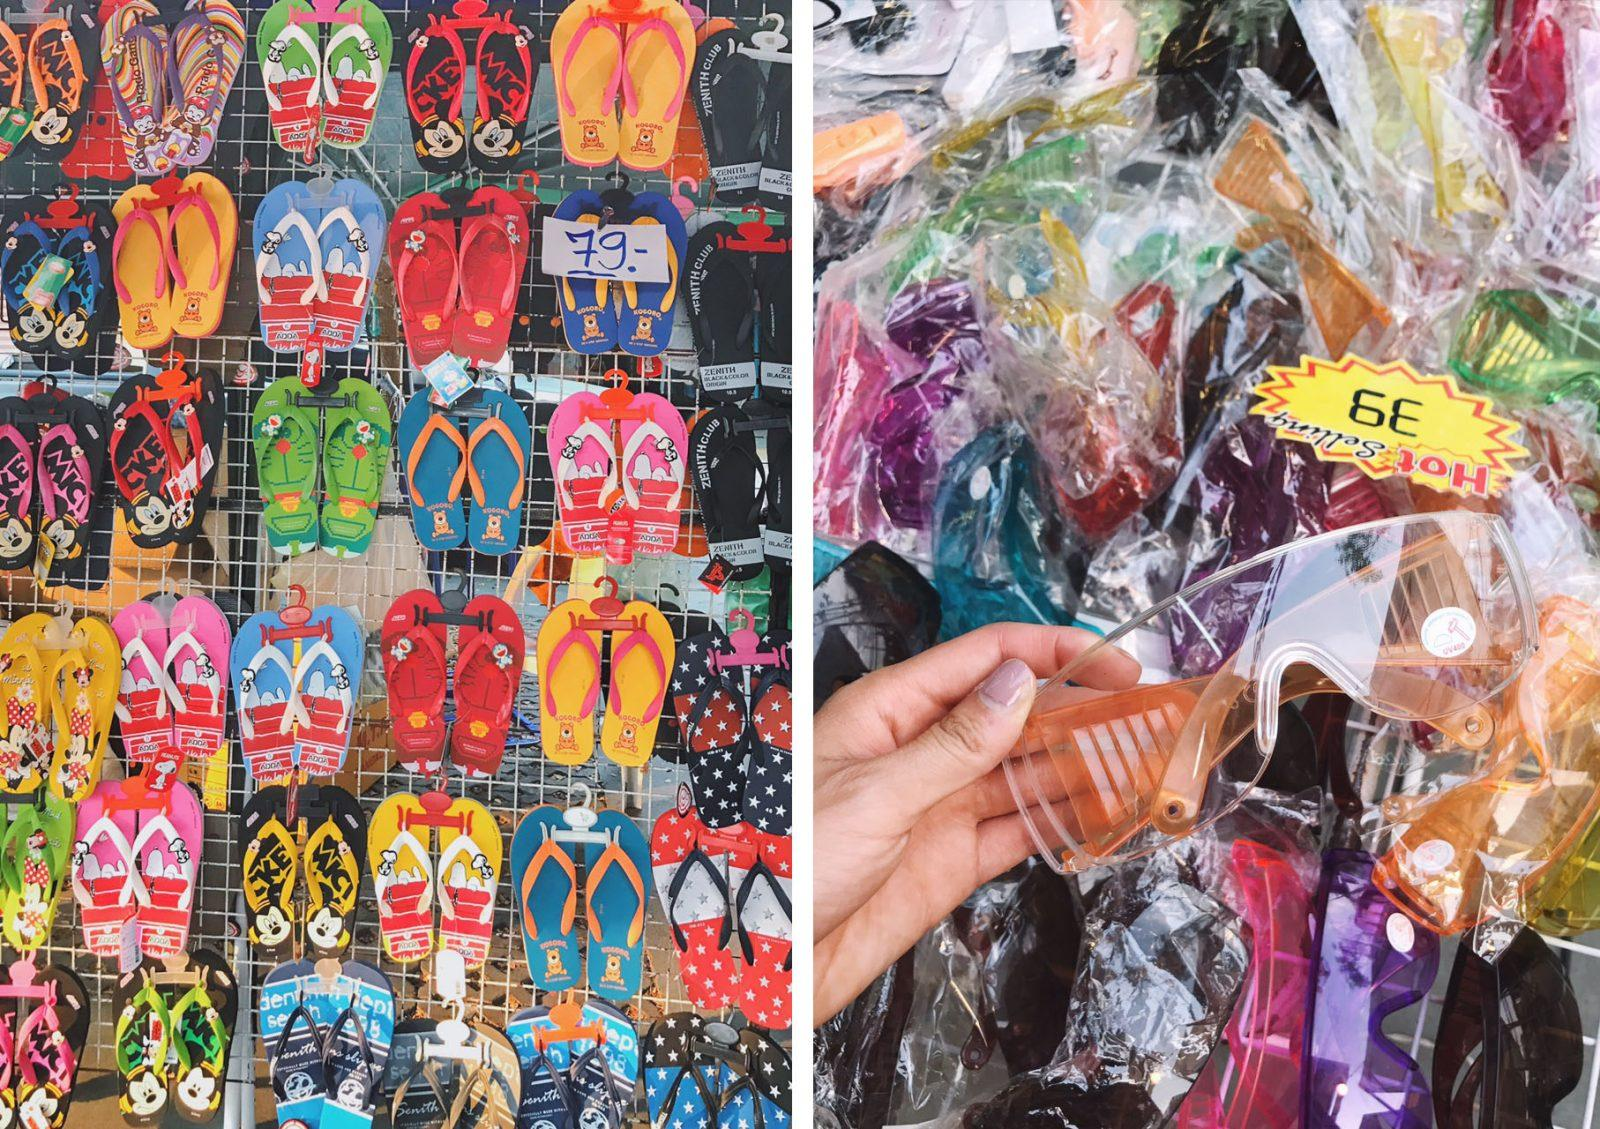 Glasses Protection Preparing for Songkran Shoes